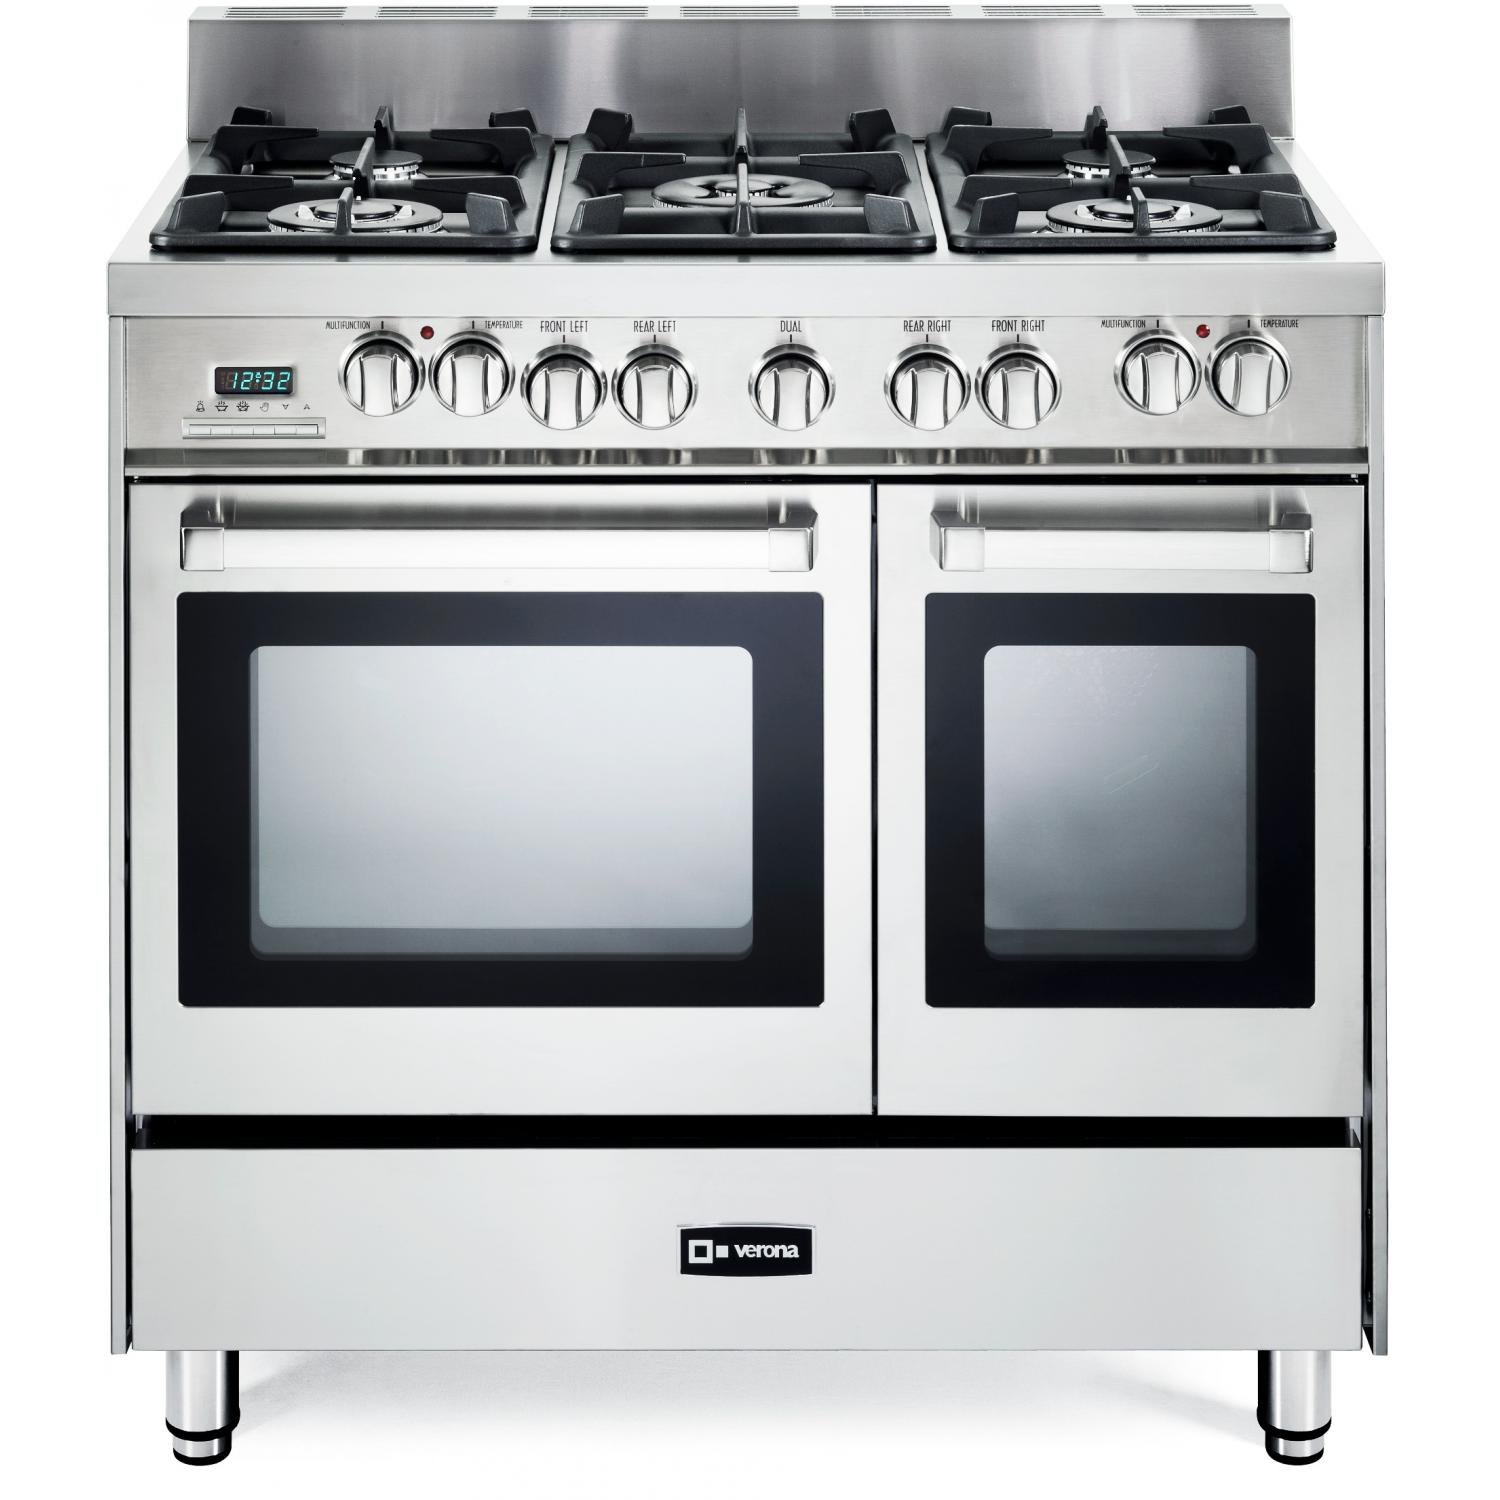 Side by side double oven gas stove - Amazon Com Verona Vefsge365ndss 36 Pro Style Dual Fuel Range With 5 Sealed Burners 2 European Convection Ovens Multi Function Programmable Ovens And